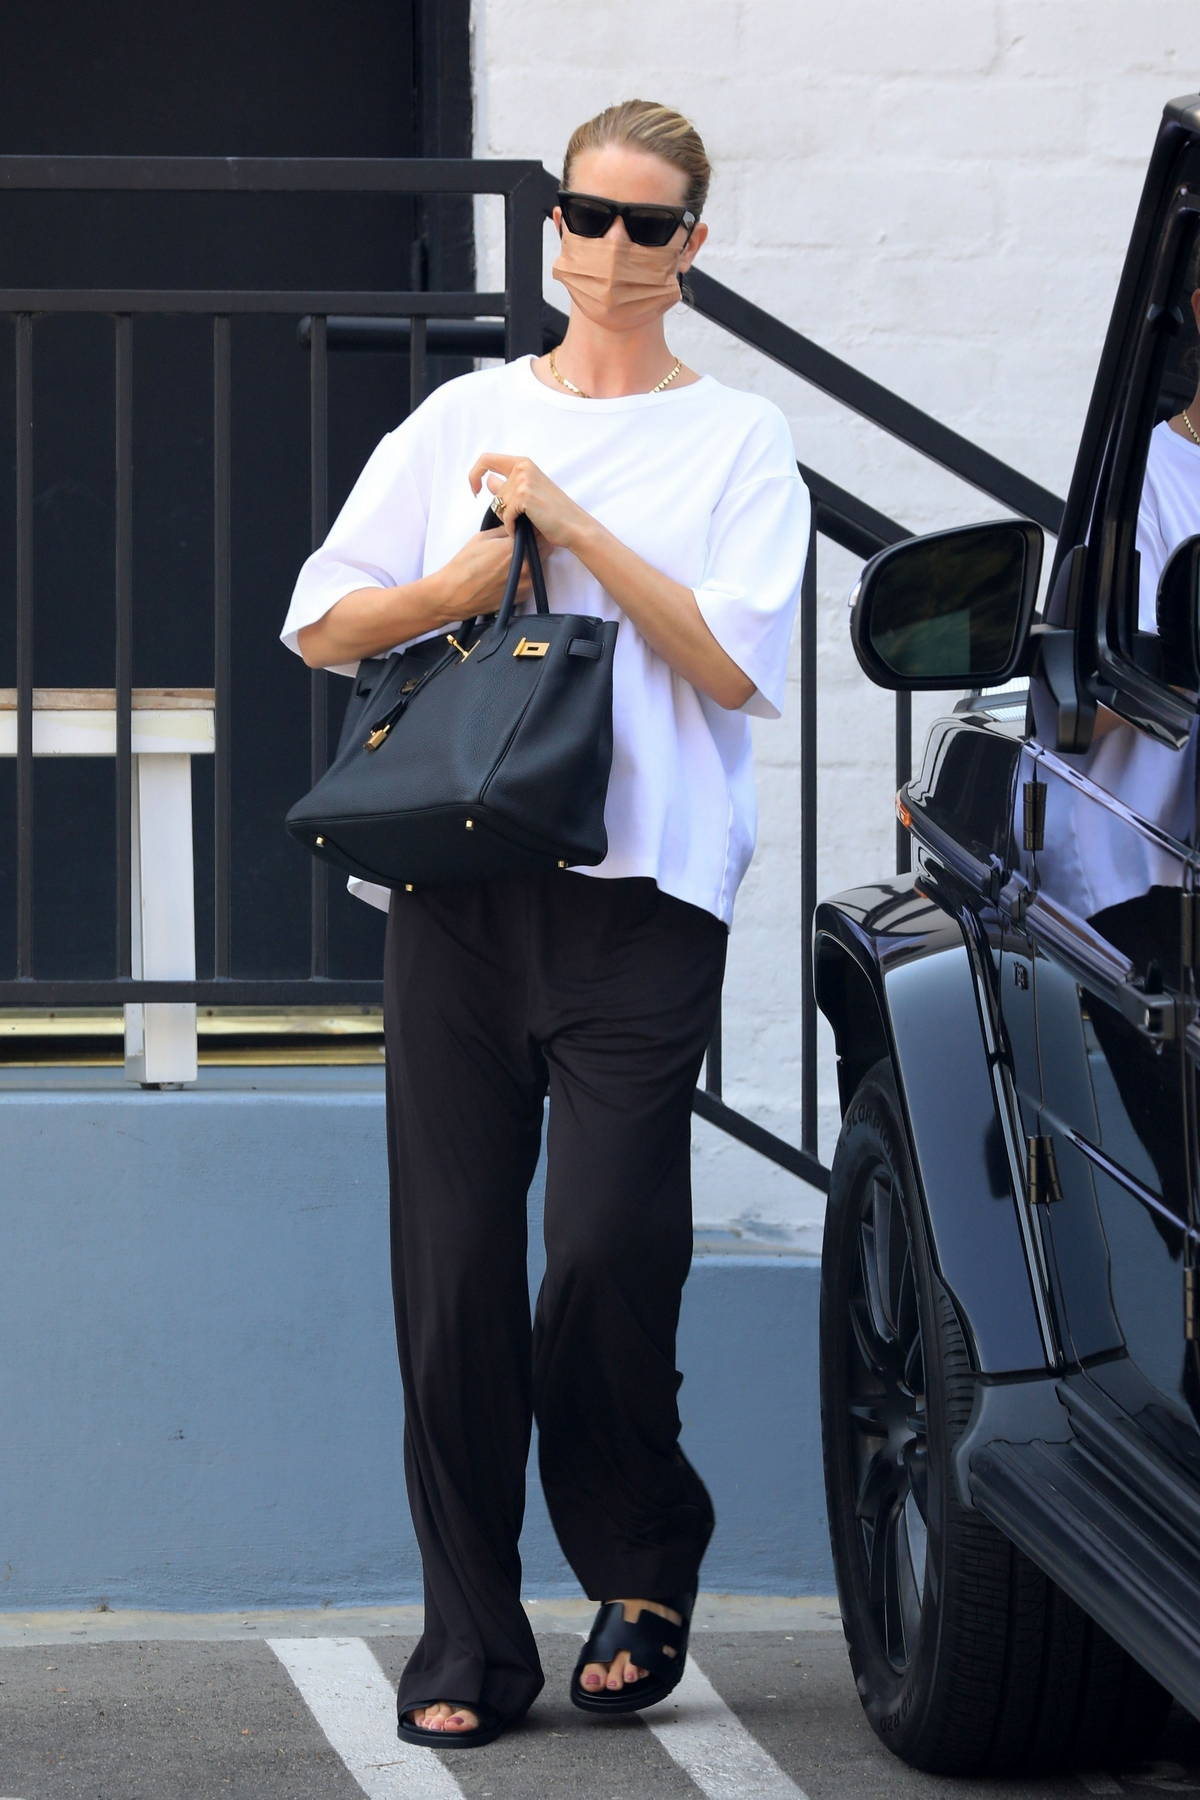 Rosie Huntington-Whiteley looks casual yet chic in monochrome while heading out to run a few errands in Beverly Hills, California